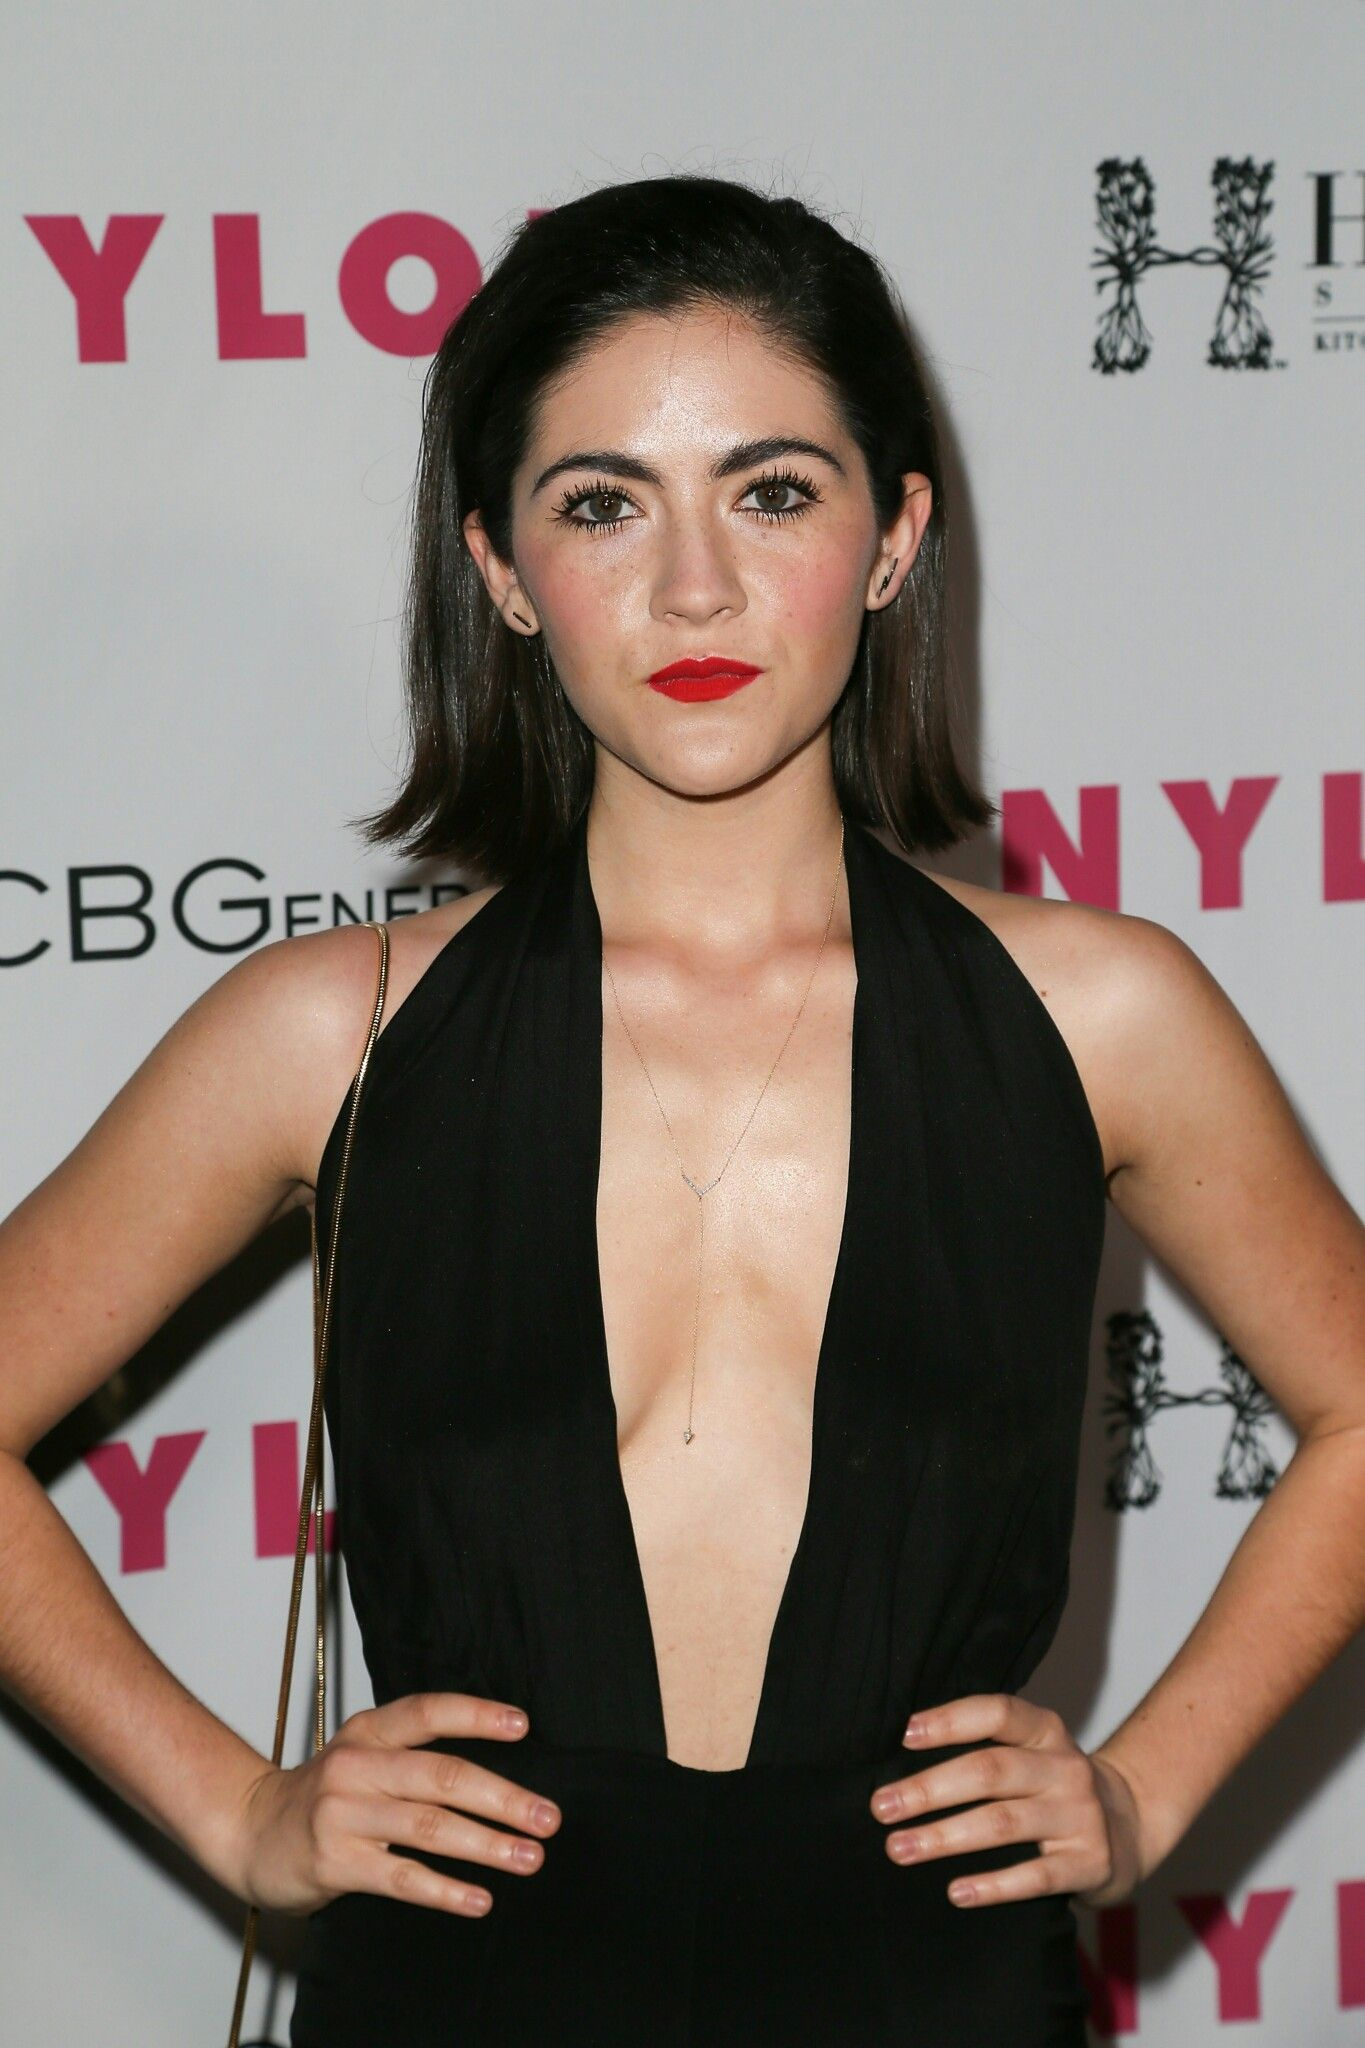 Hot Isabelle Fuhrman nude photos 2019